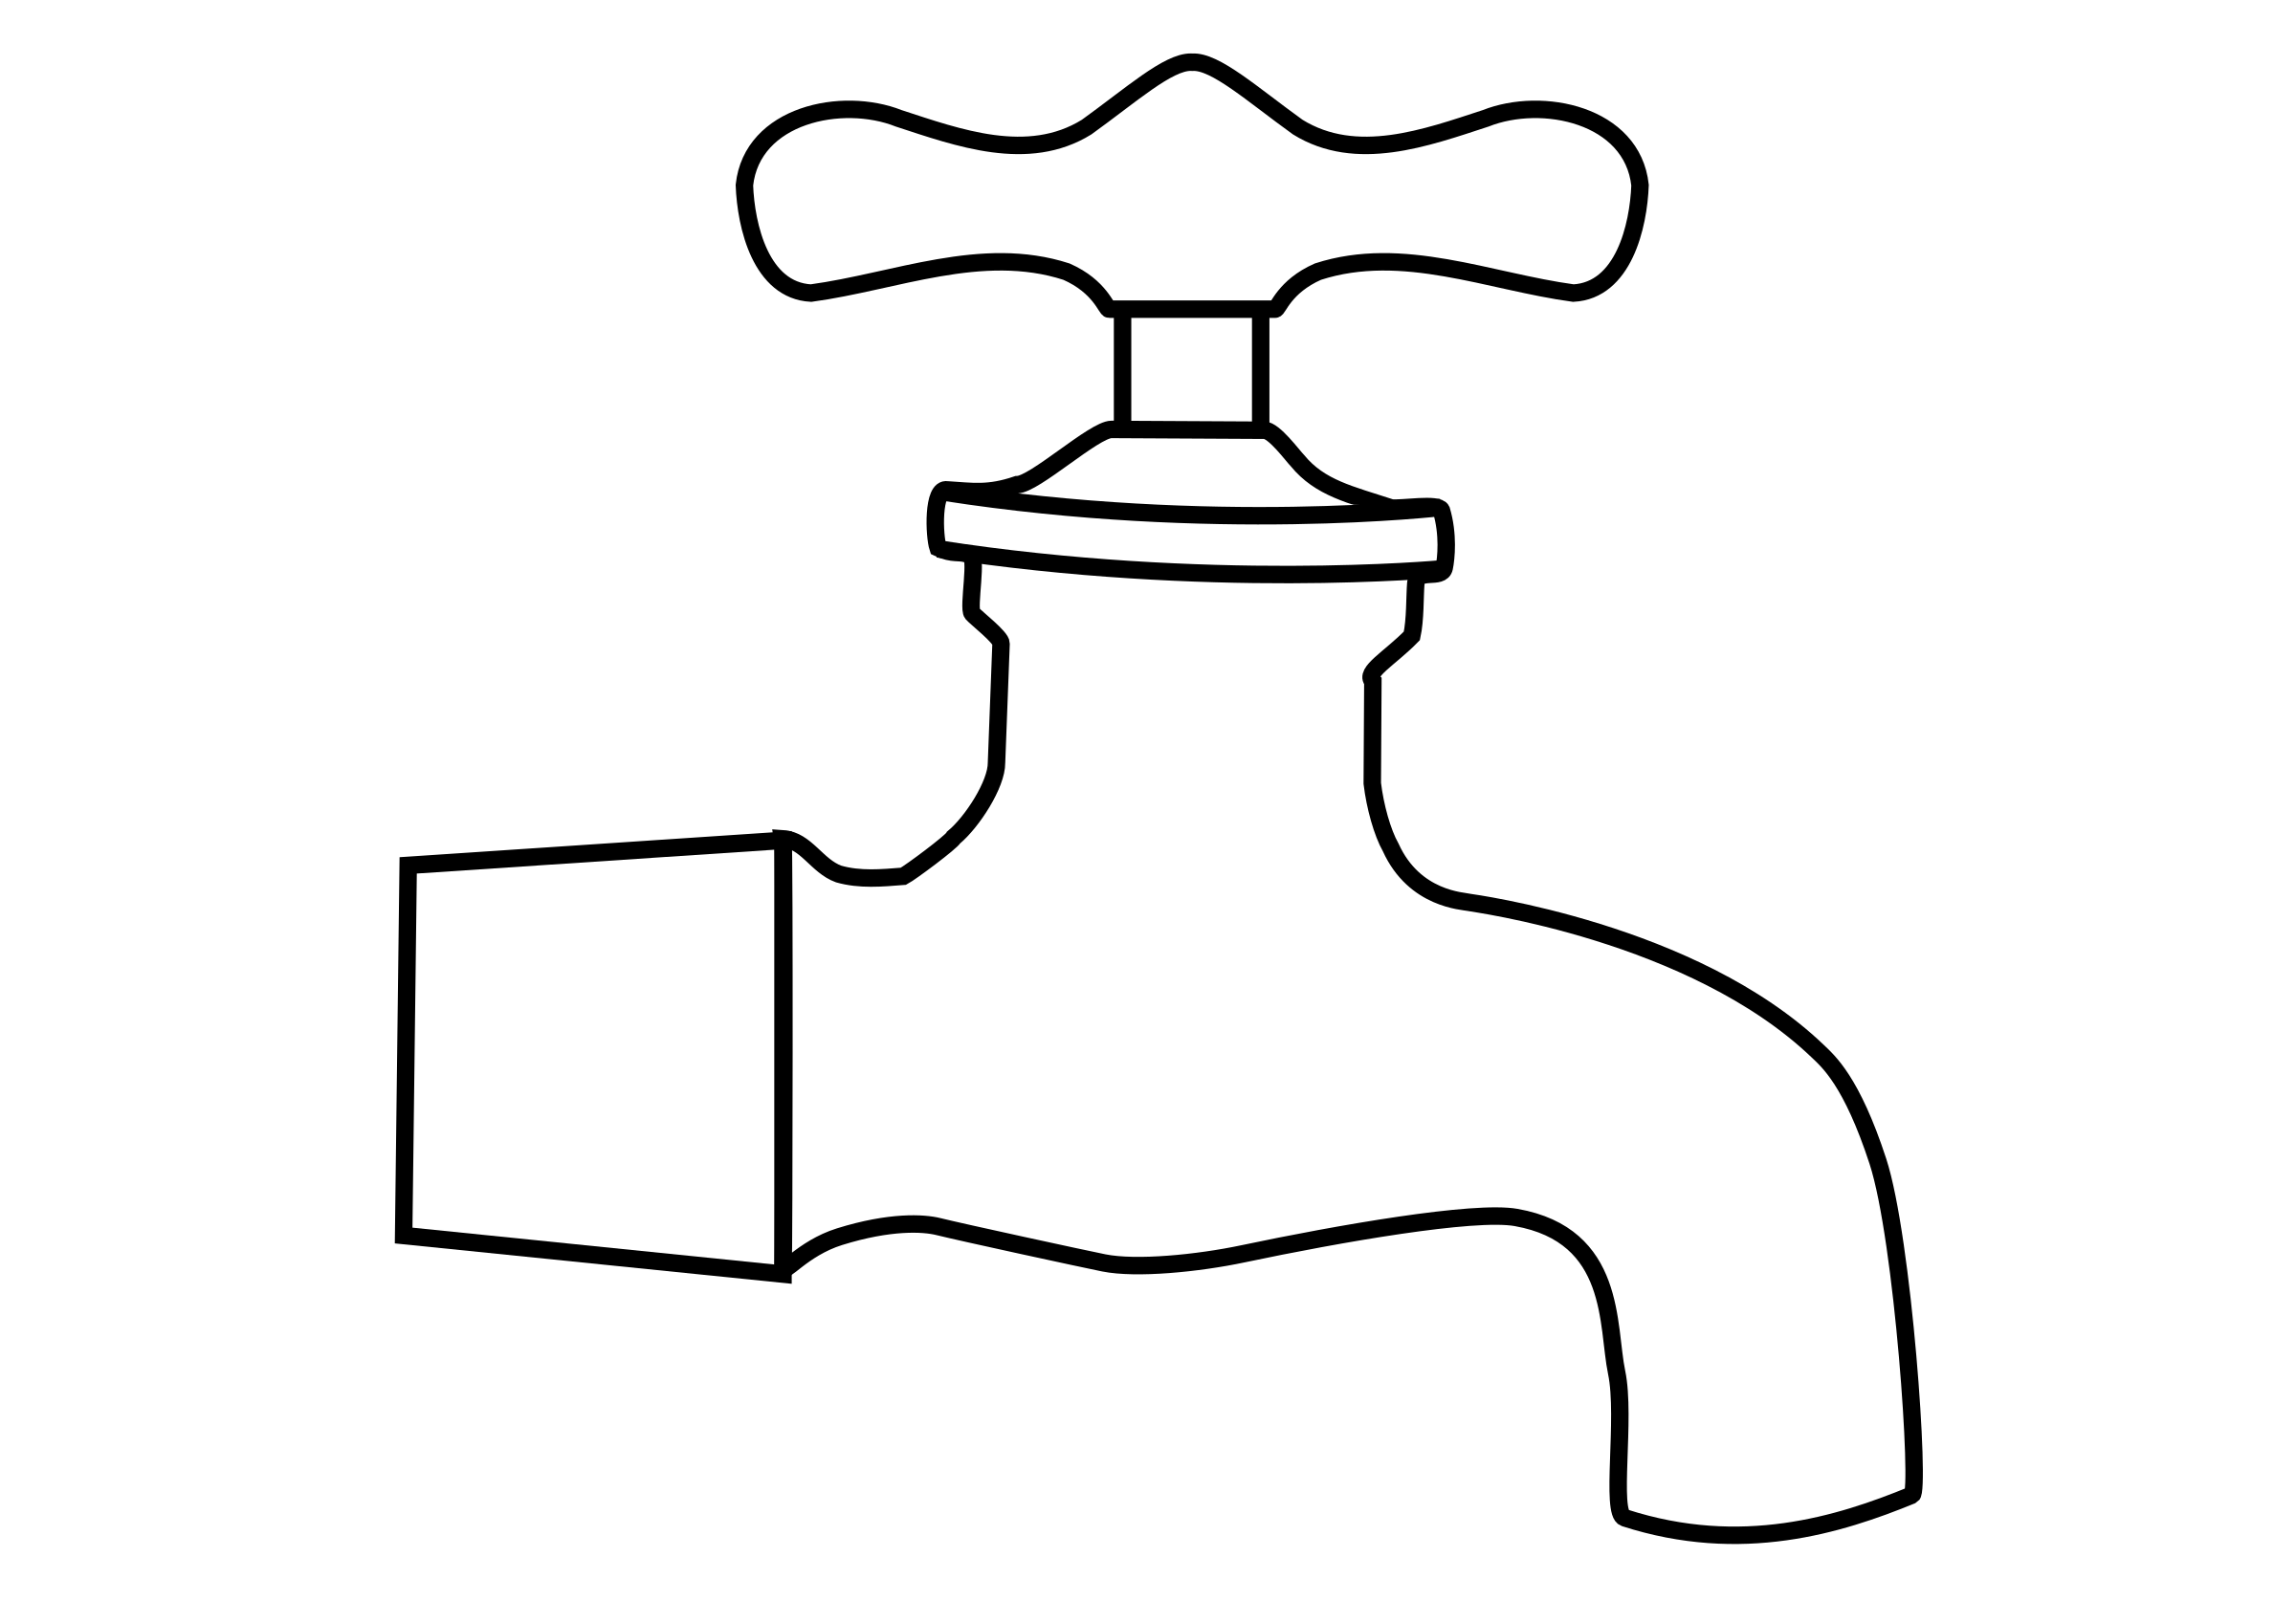 picture library stock Faucet clipart black and white. Collection of free fosset